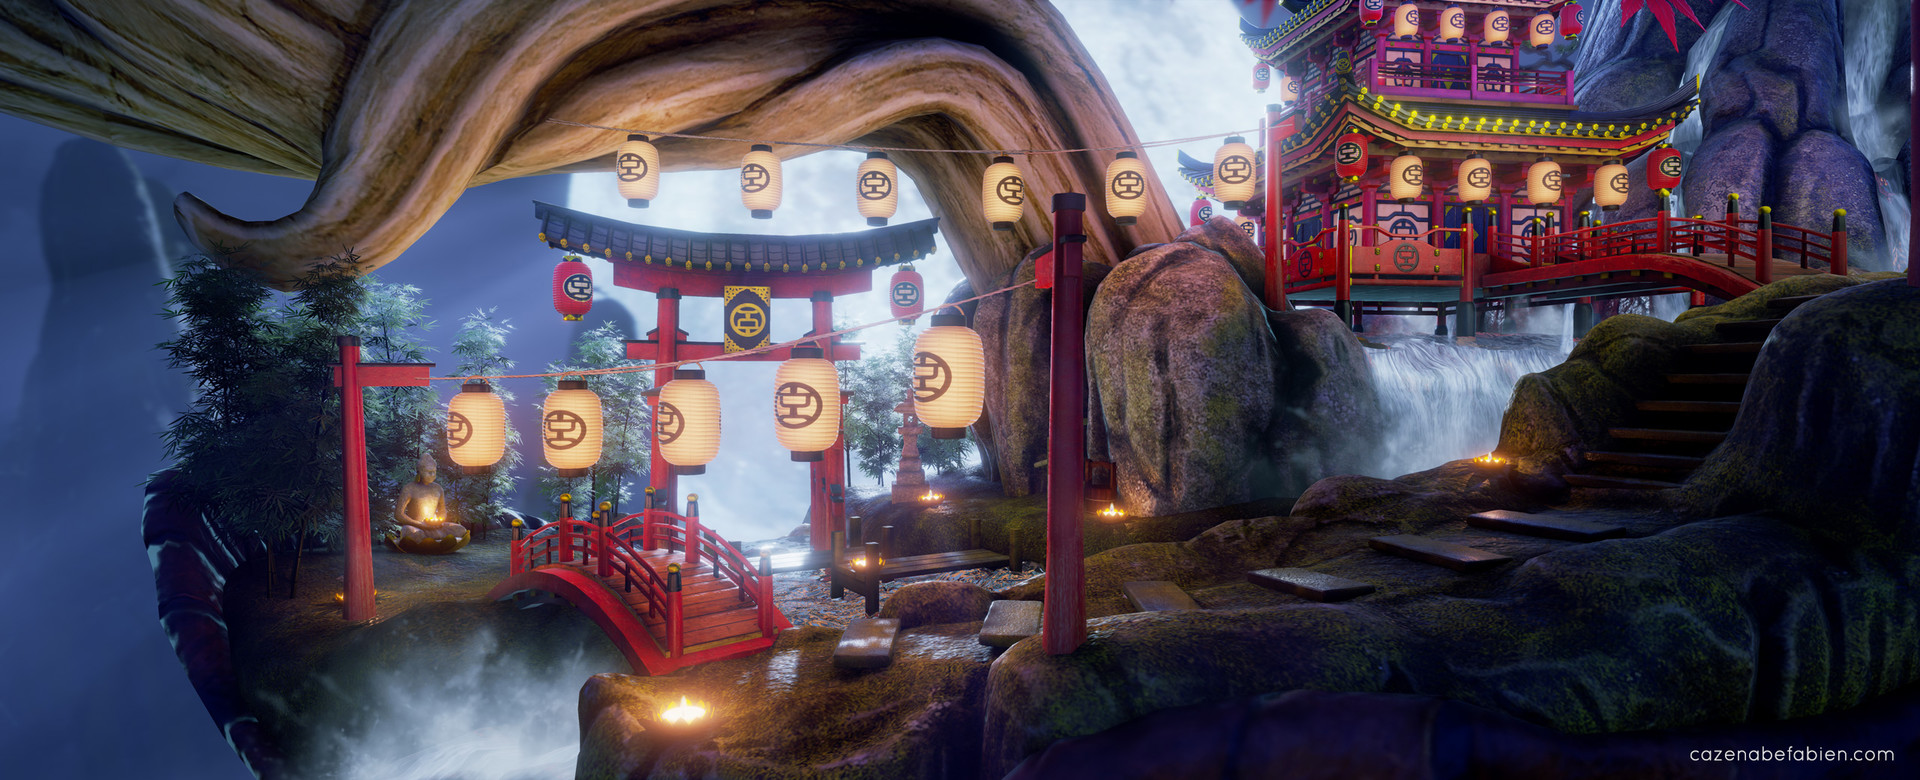 Fabien cazenabe lost japanese temple 3d environment art design unreal engine 09